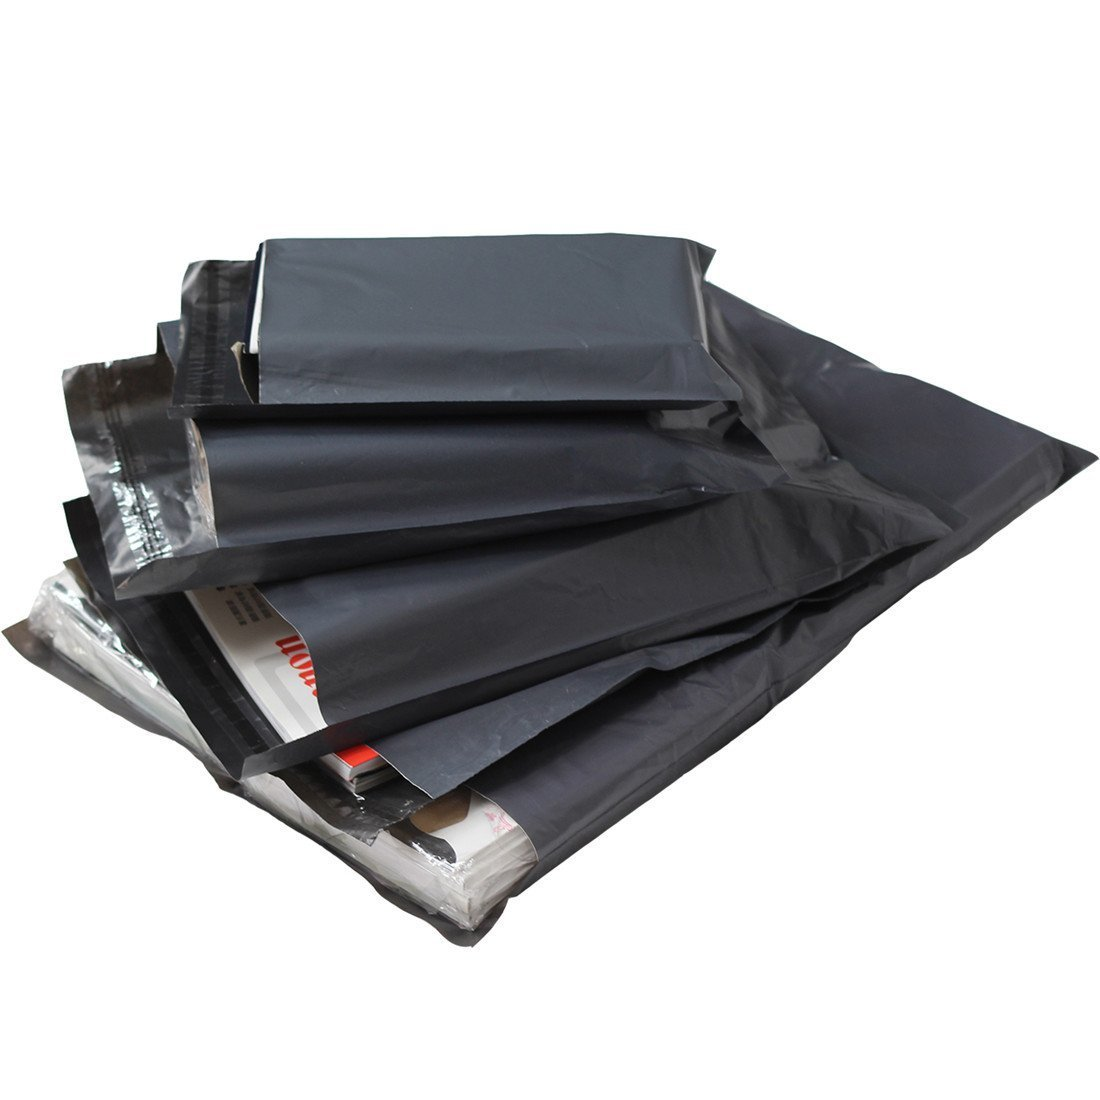 50 BAGS OF 14x16 INCH STRONG POLY MAILING POSTAGE LARGE 55MU SELF SEAL GREY XL